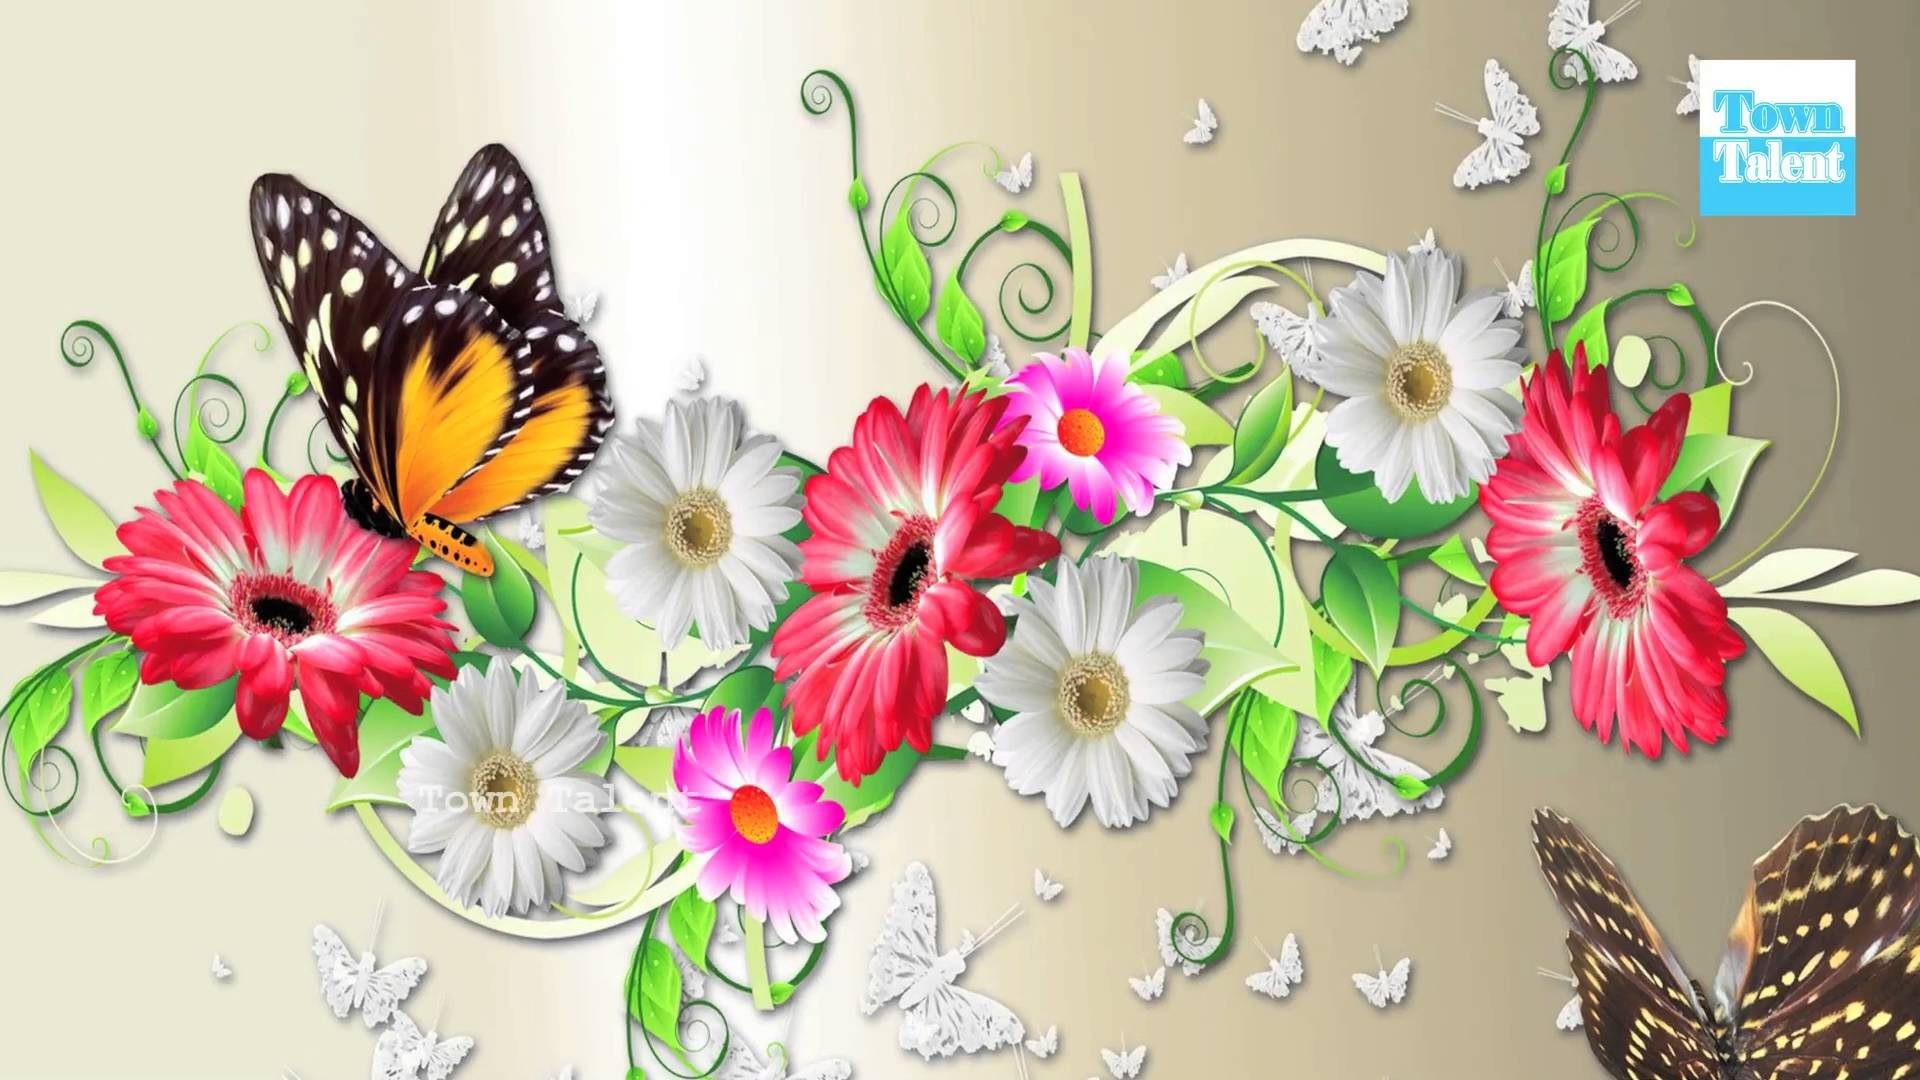 Differet flowers and beautiful butterfly wallpaper